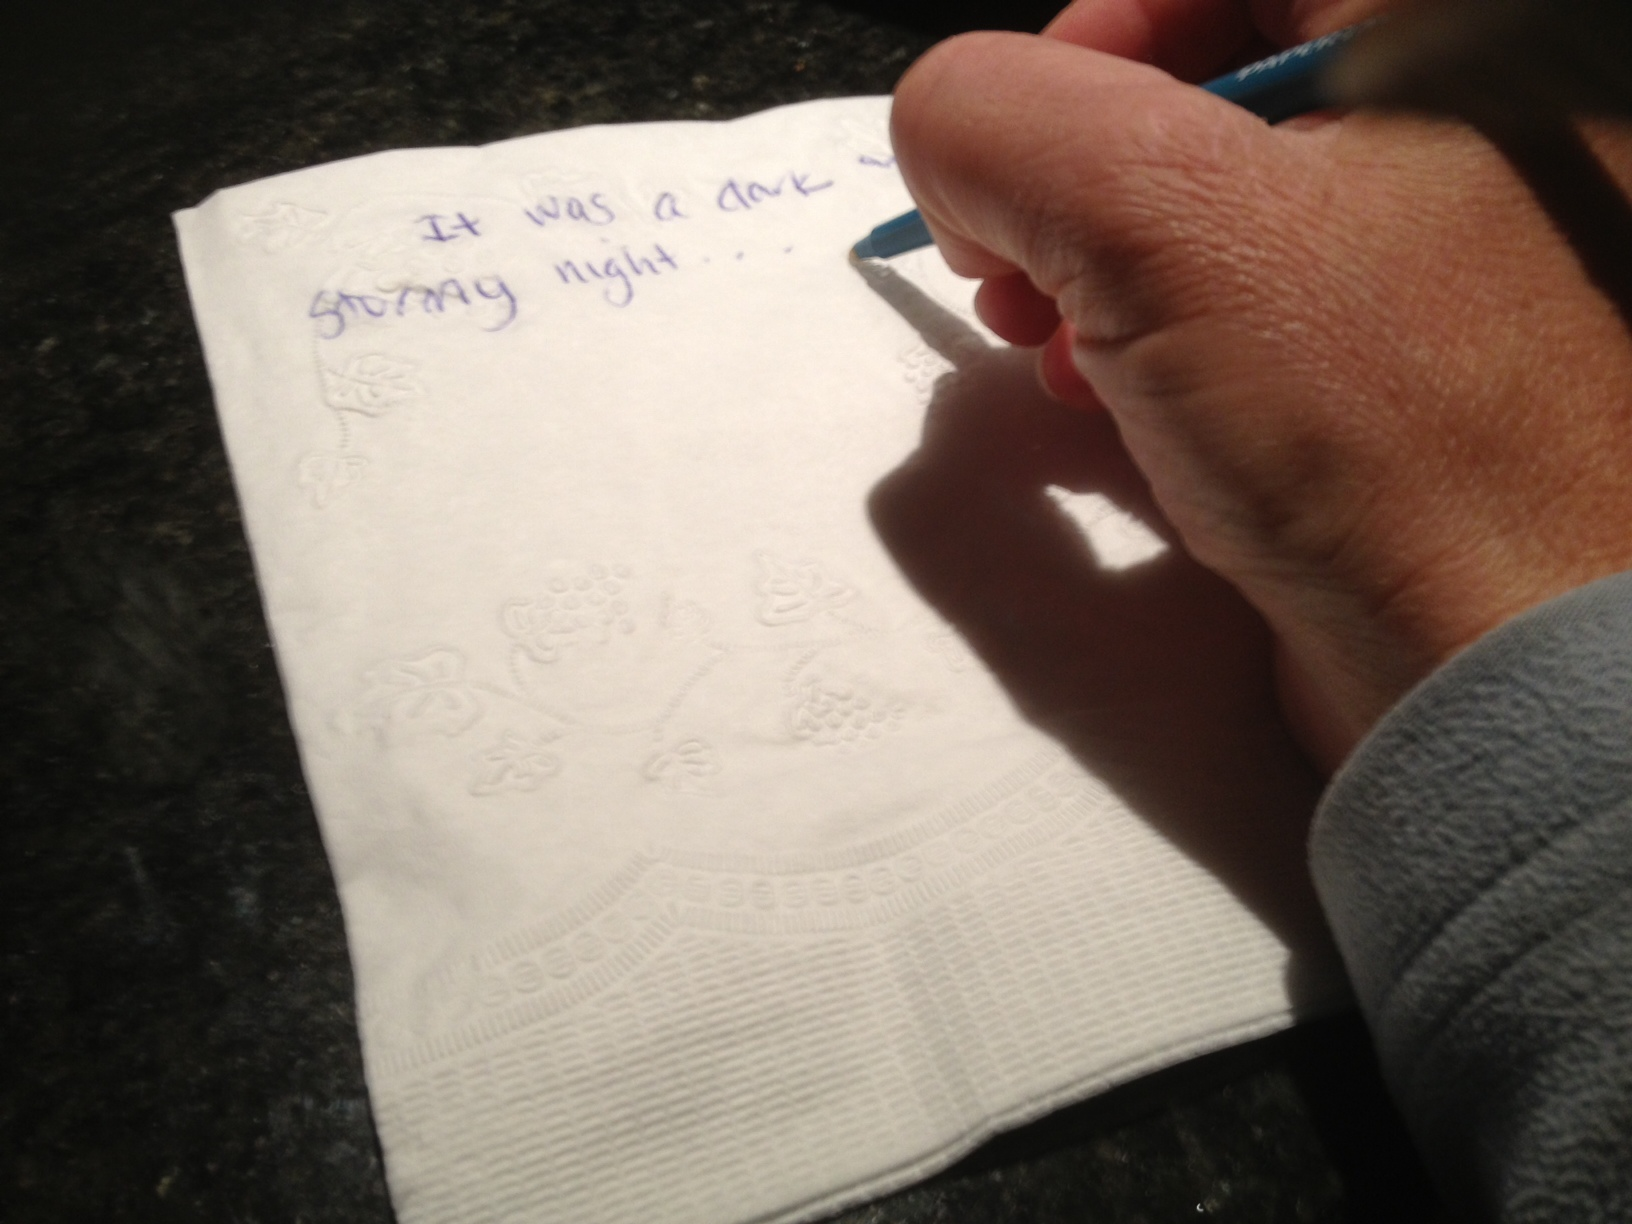 Notes on a napkin